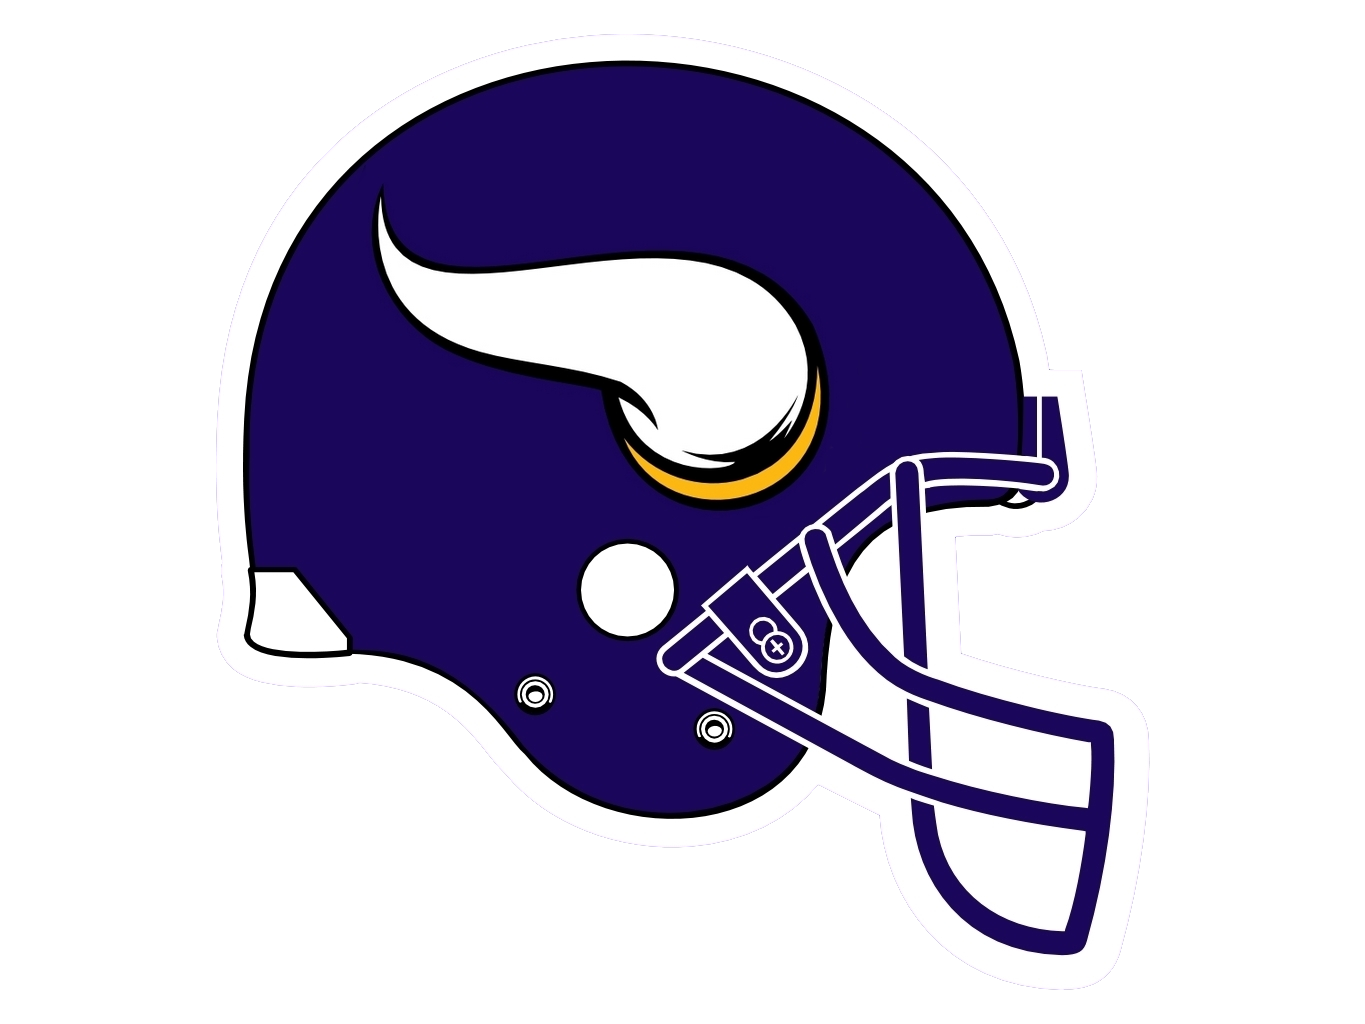 Enterprise Scanning Services Partner: Minnesota Vikings